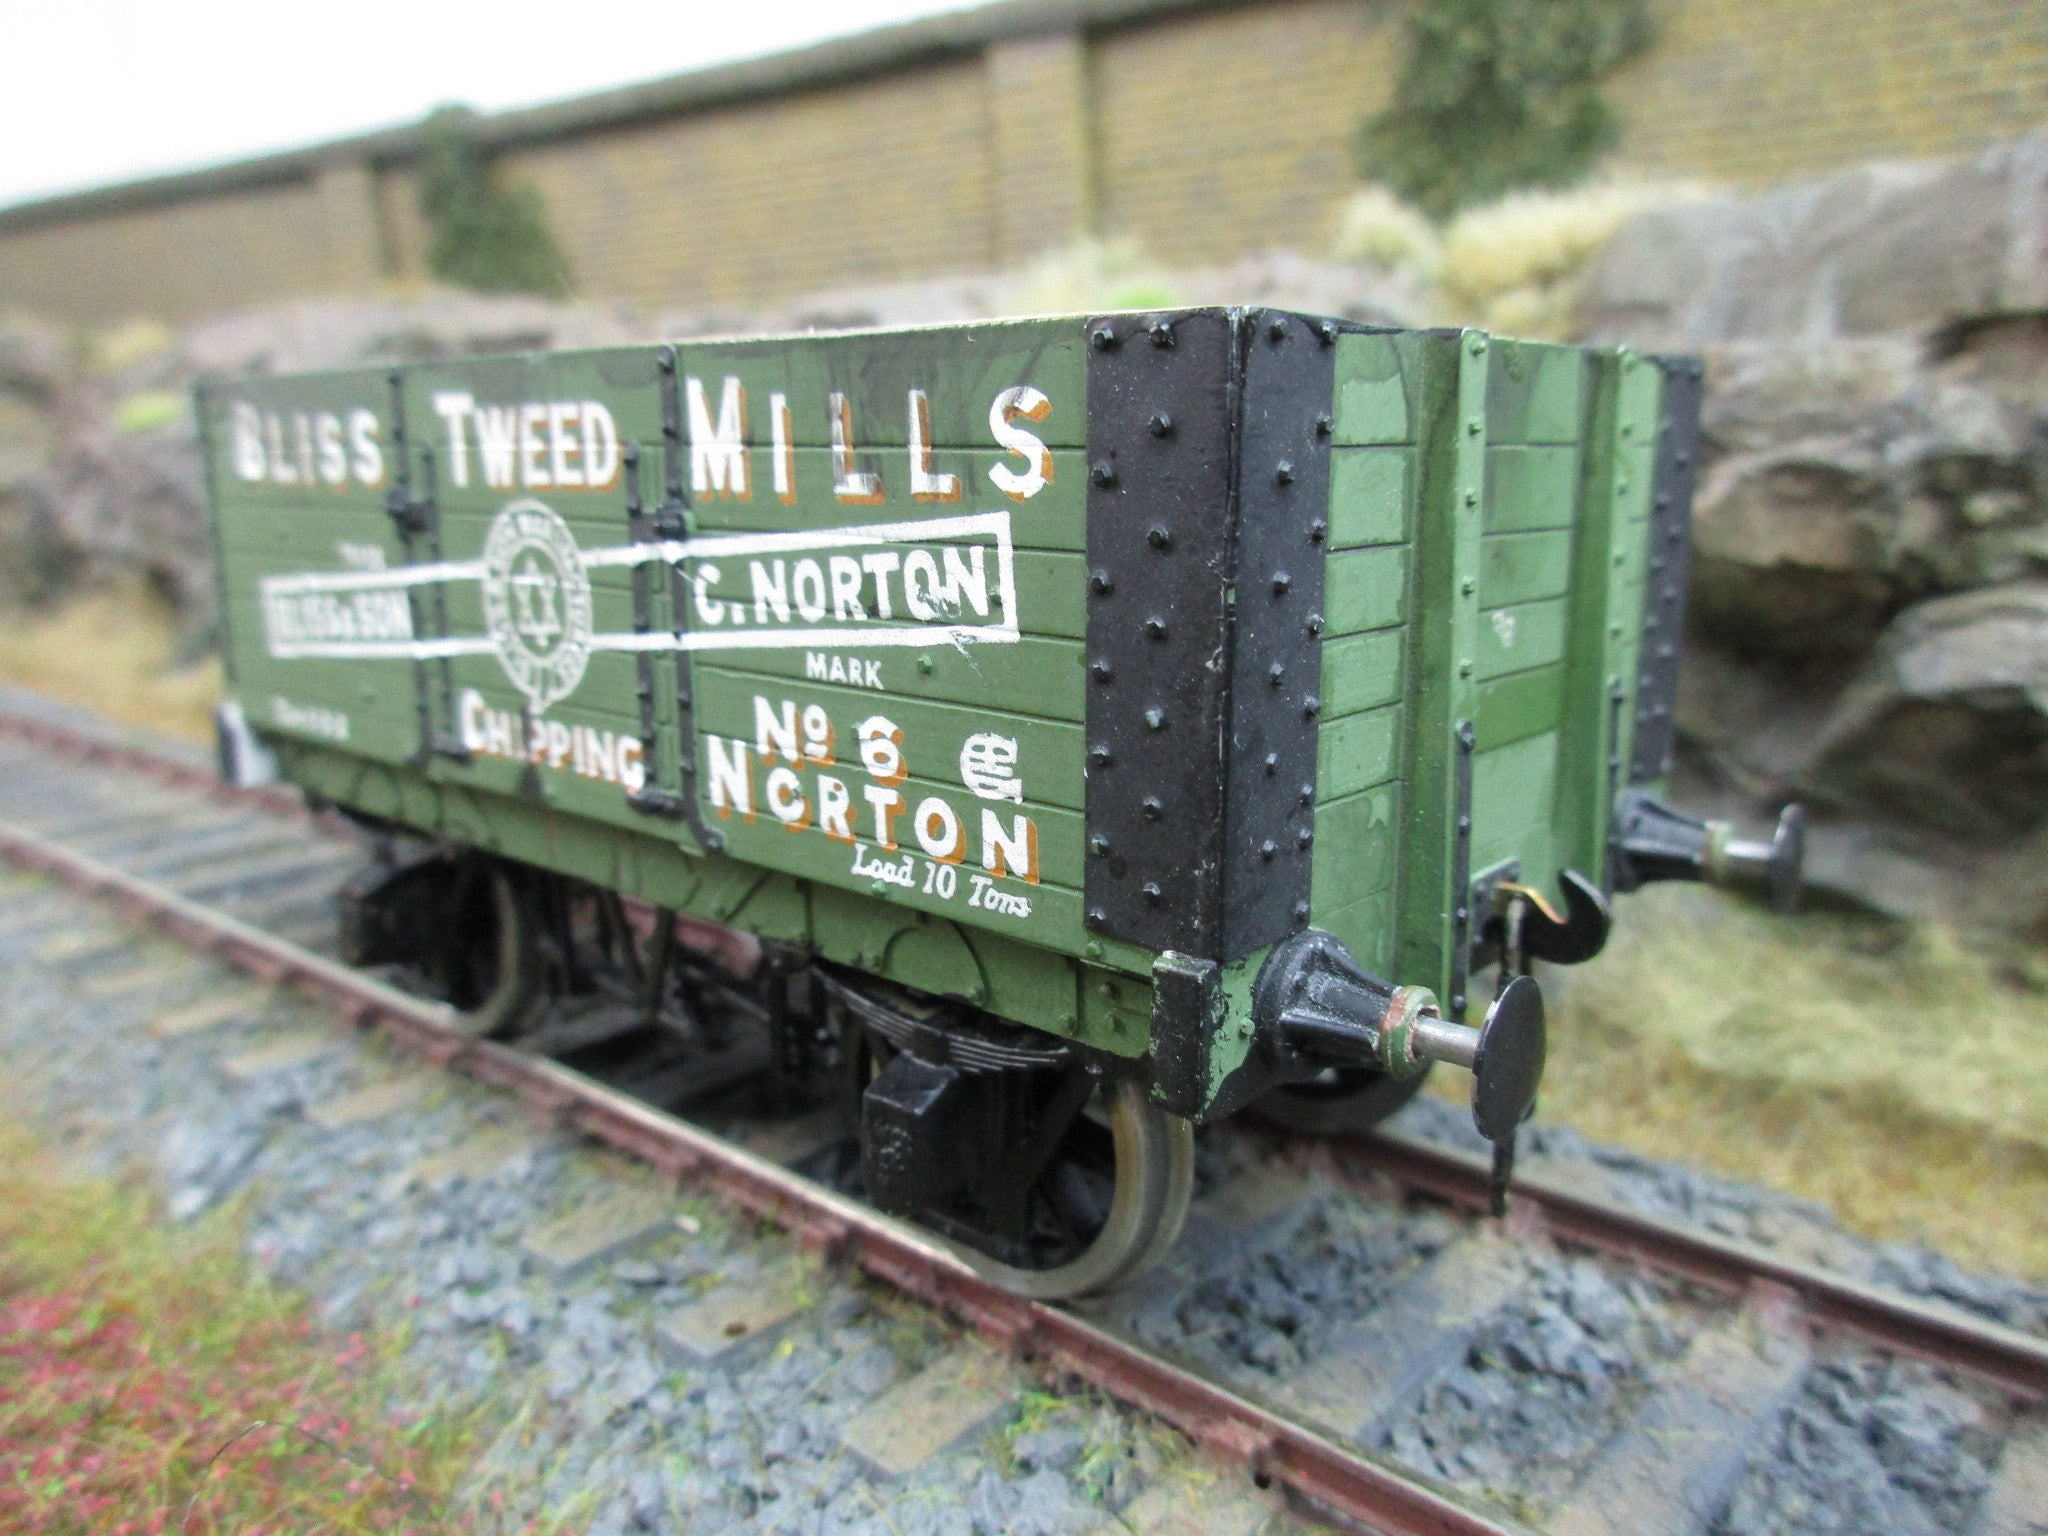 7mm Finescale O Gauge Kit Built PO Wagon 'Bliss Tweed Mills'